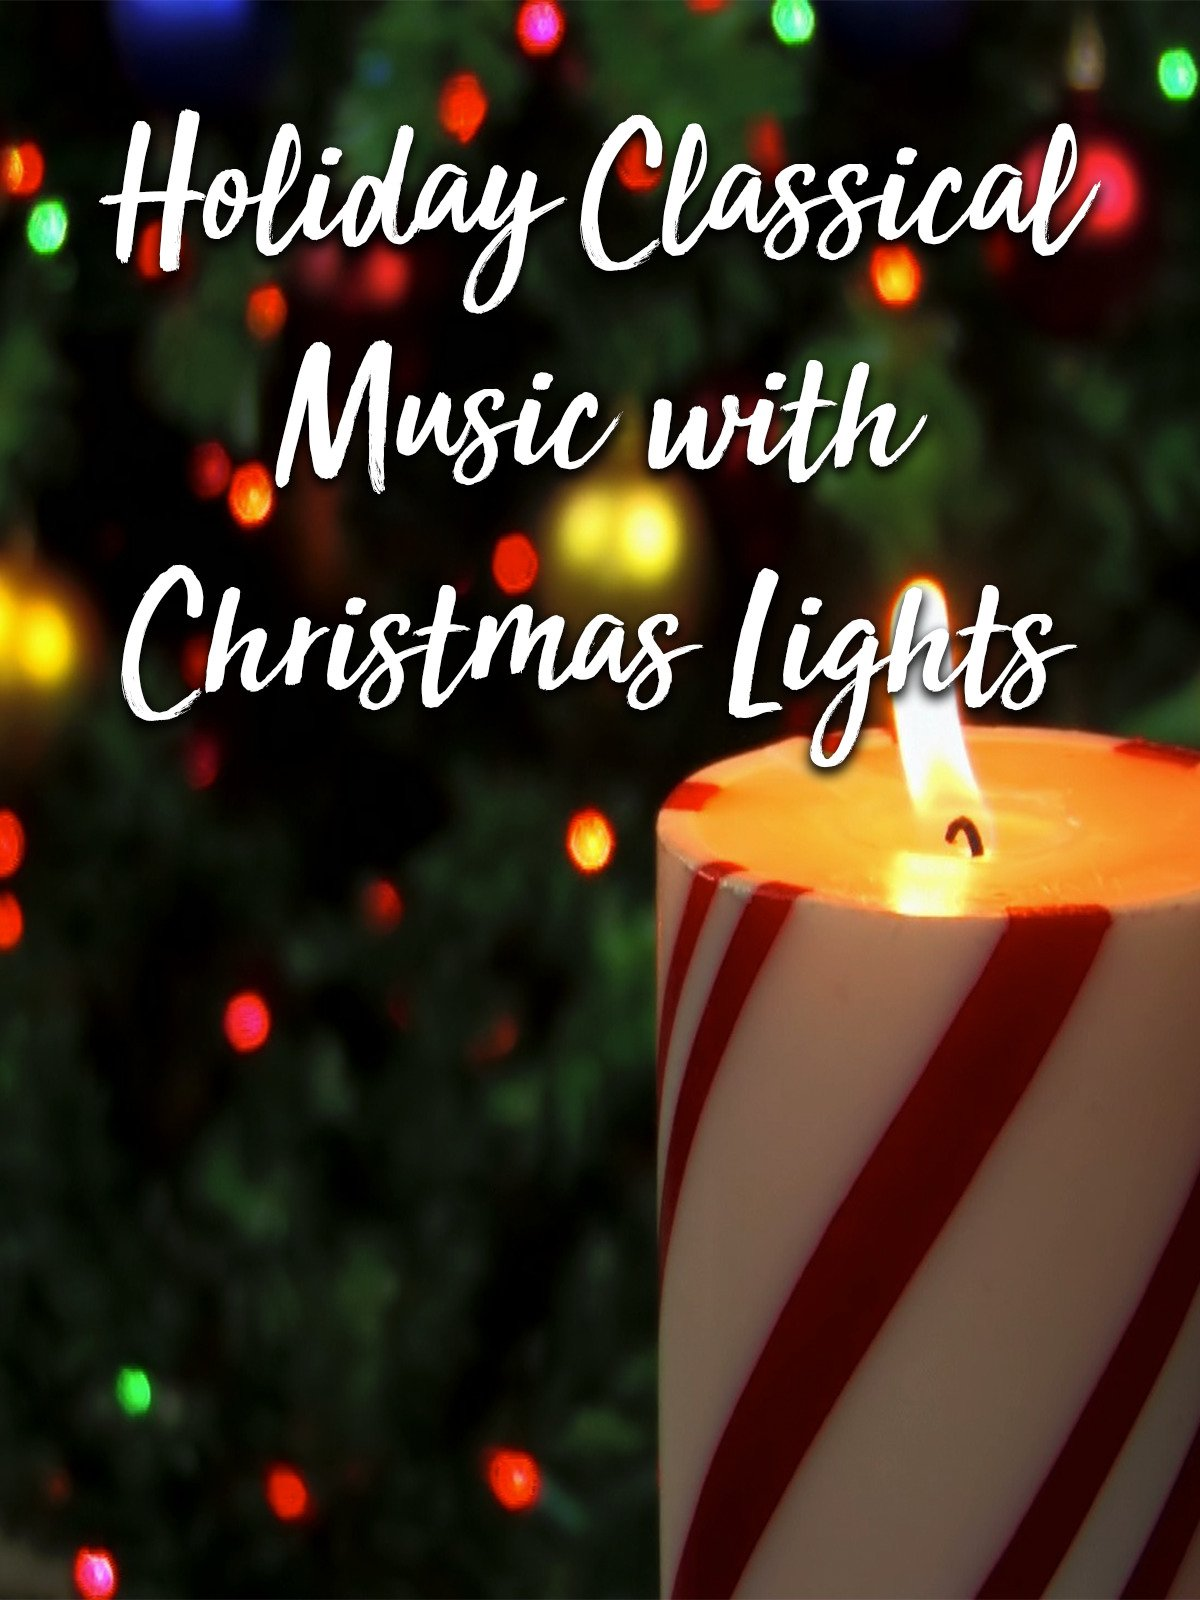 Holiday Classical Music with Christmas Lights